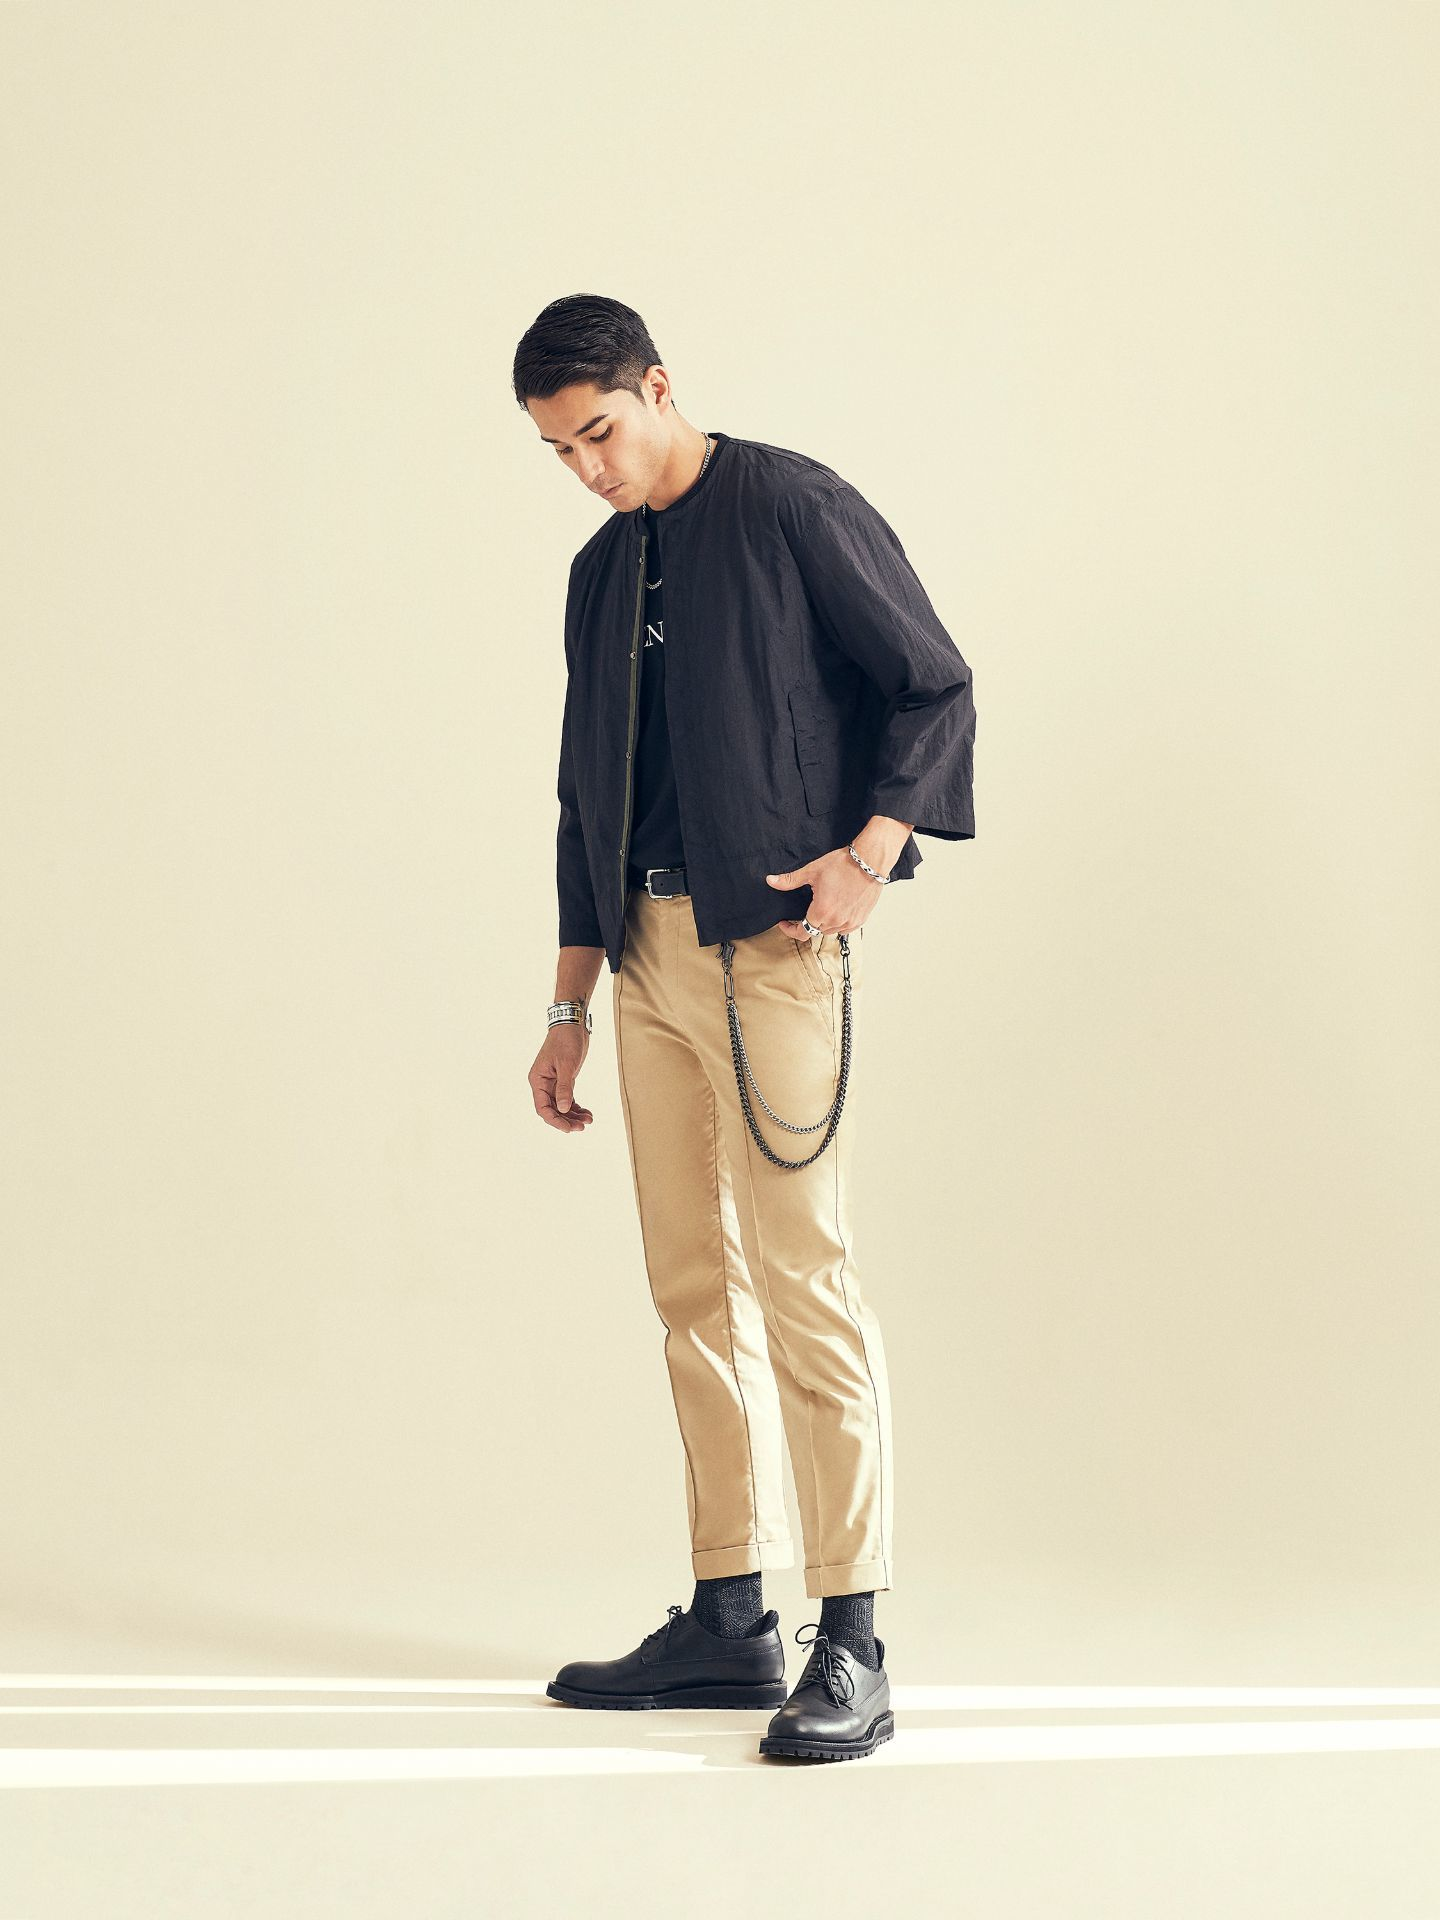 gentleman 2019 summer lookbook 1 38